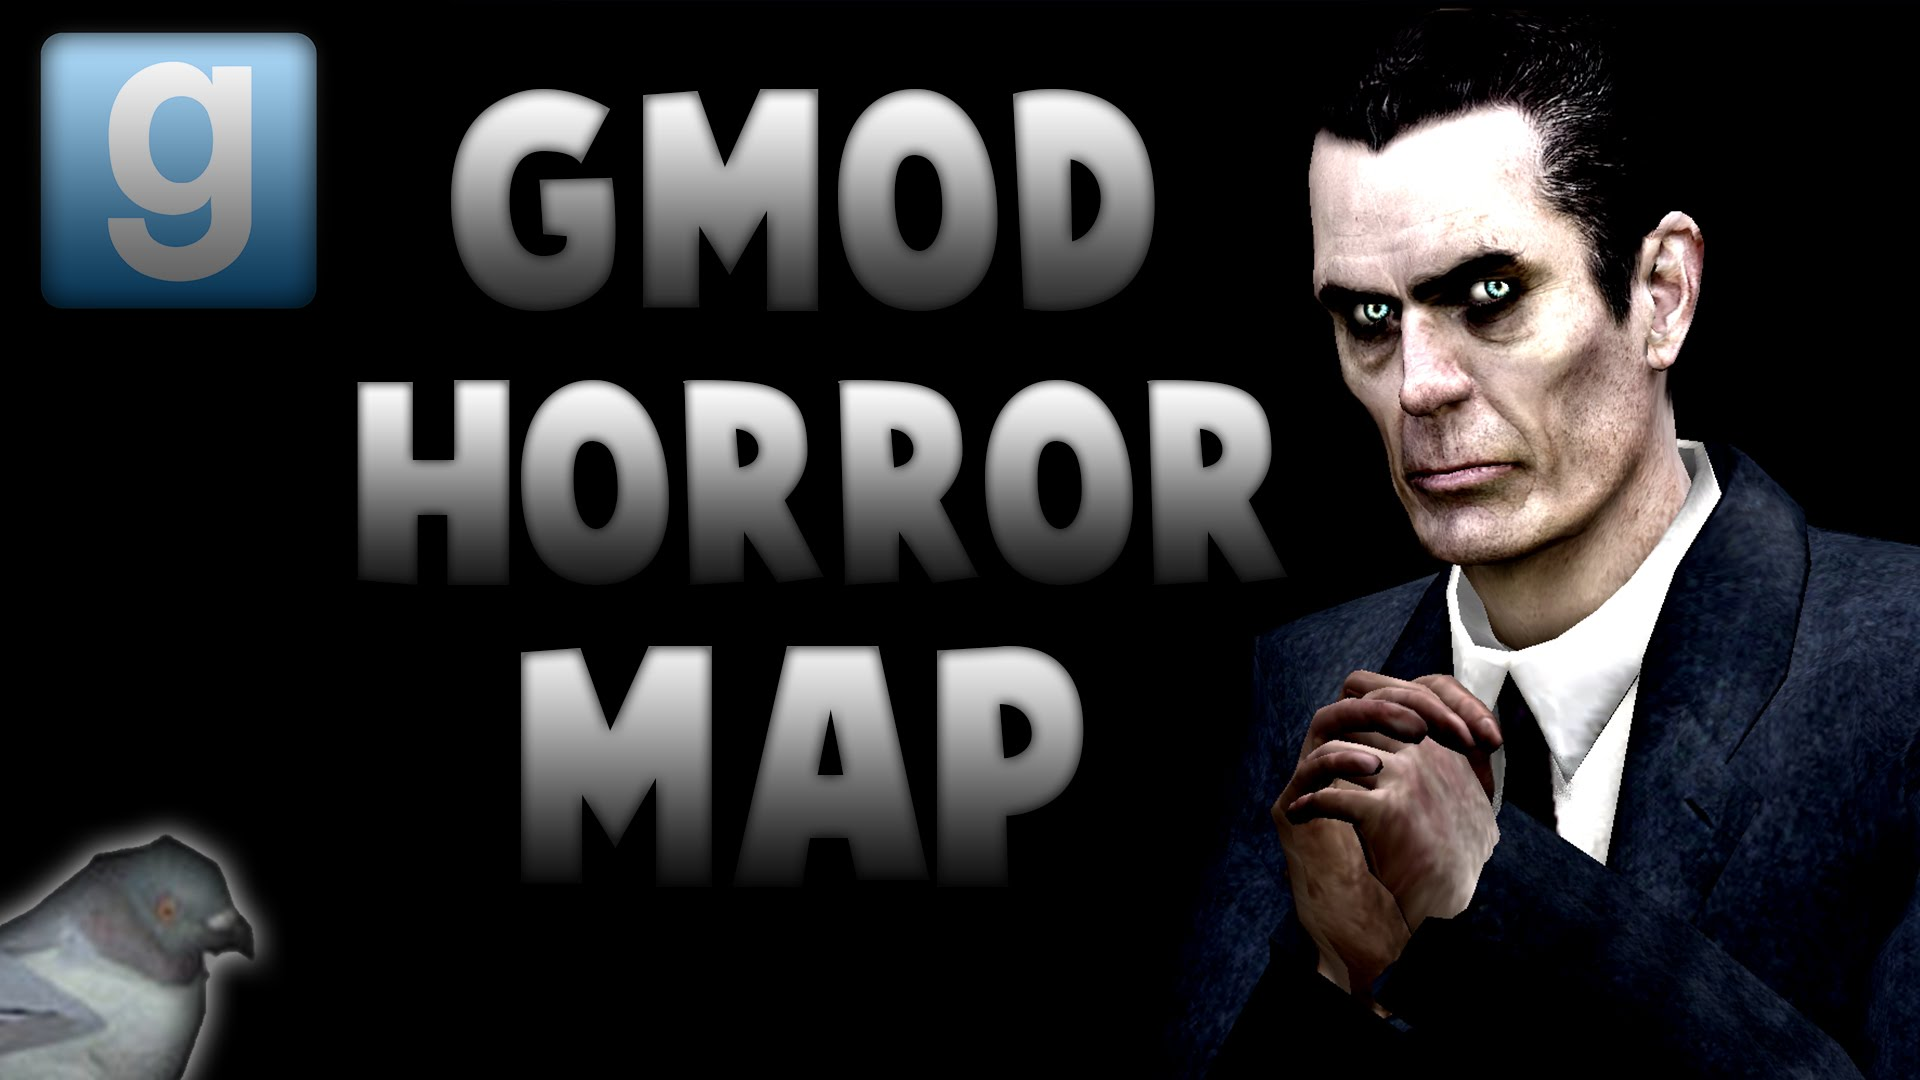 Workshop di Steam :: Horror Maps on team fortress 2 horror maps, gary mod horror maps, minecraft horror maps, venturiantale horror maps, venturian gmod horror maps, garry's mod adult maps, roblox horror maps,